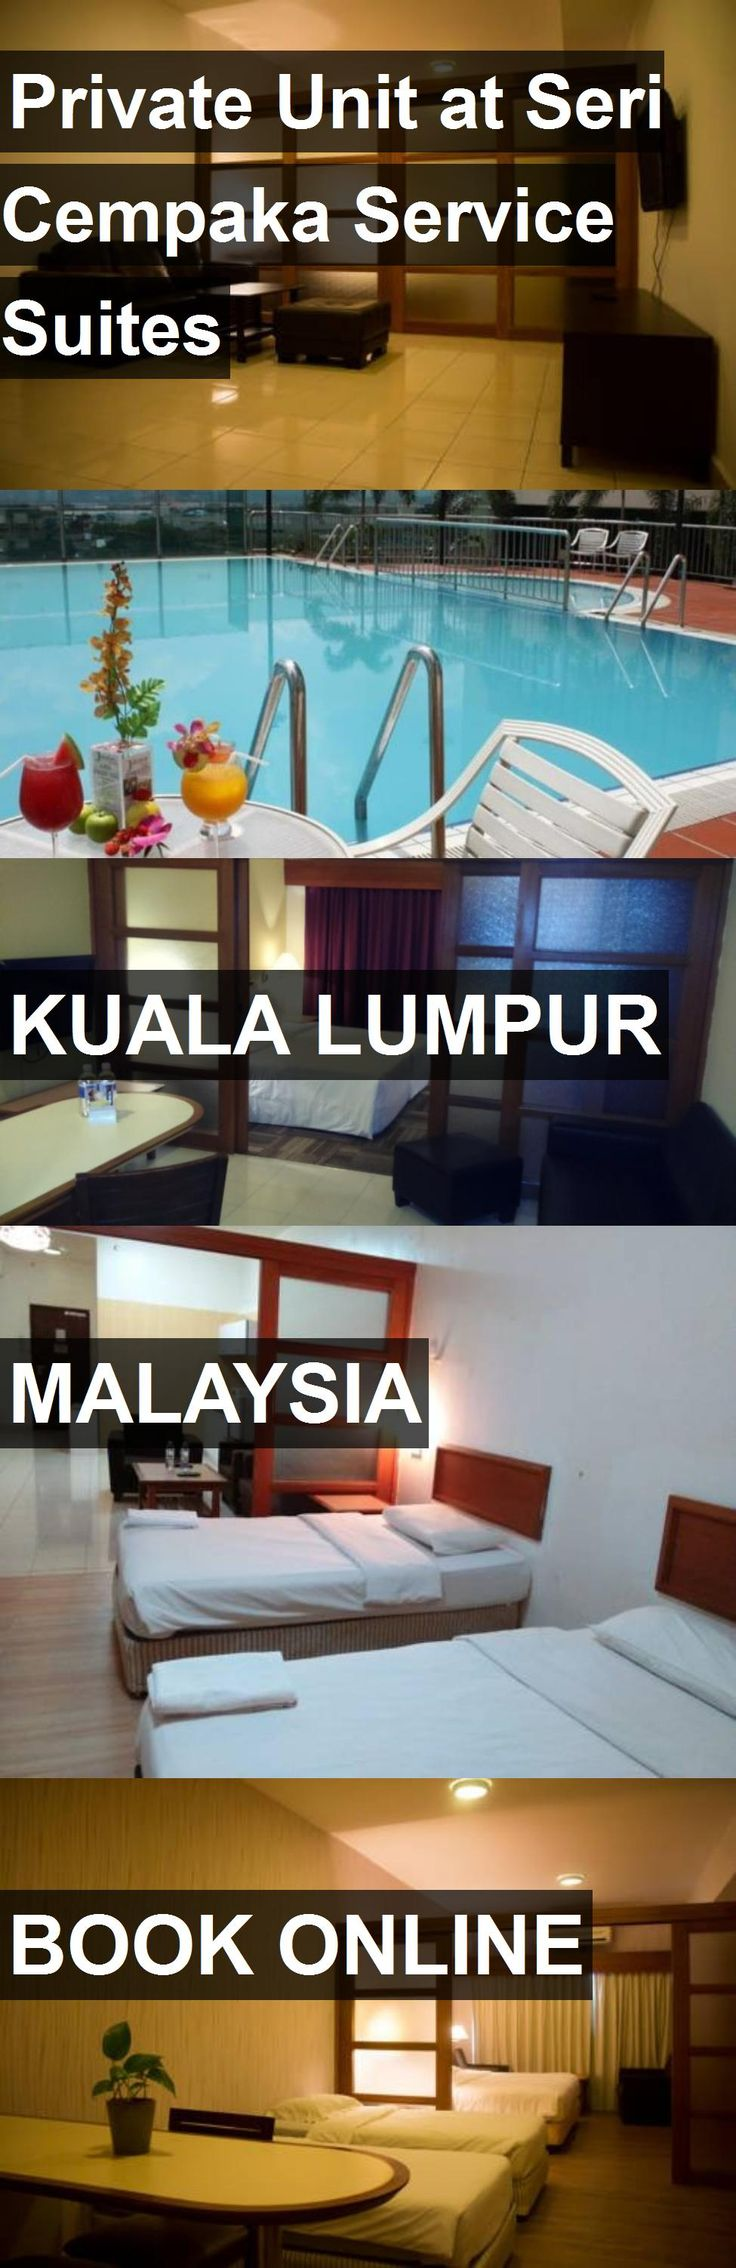 Hotel Private Unit at Seri Cempaka Service Suites in Kuala Lumpur, Malaysia. For more information, photos, reviews and best prices please follow the link. #Malaysia #KualaLumpur #travel #vacation #hotel